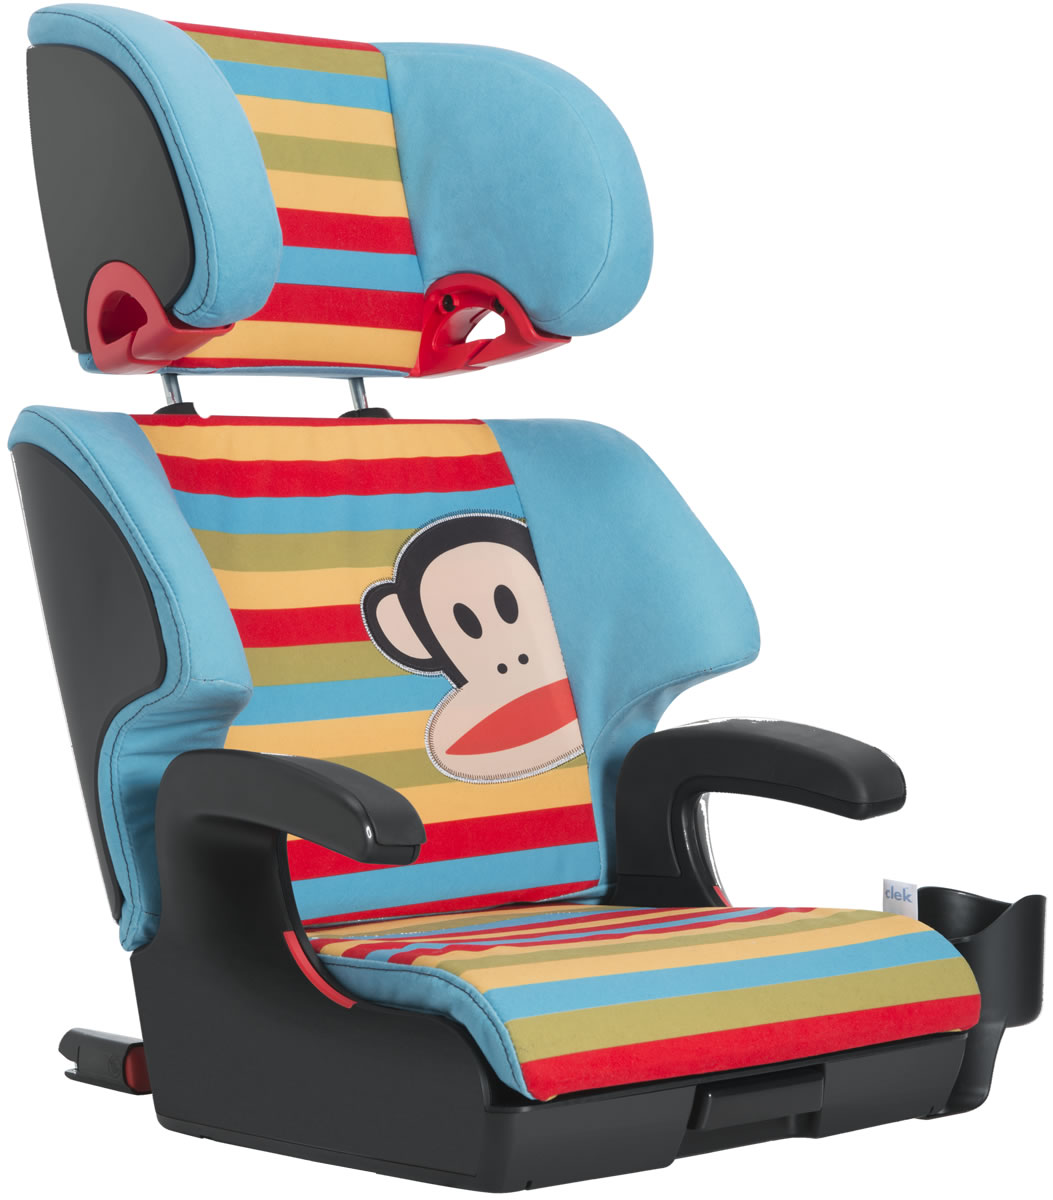 Clek Paul Frank Special Edition Olli Booster Car Seat